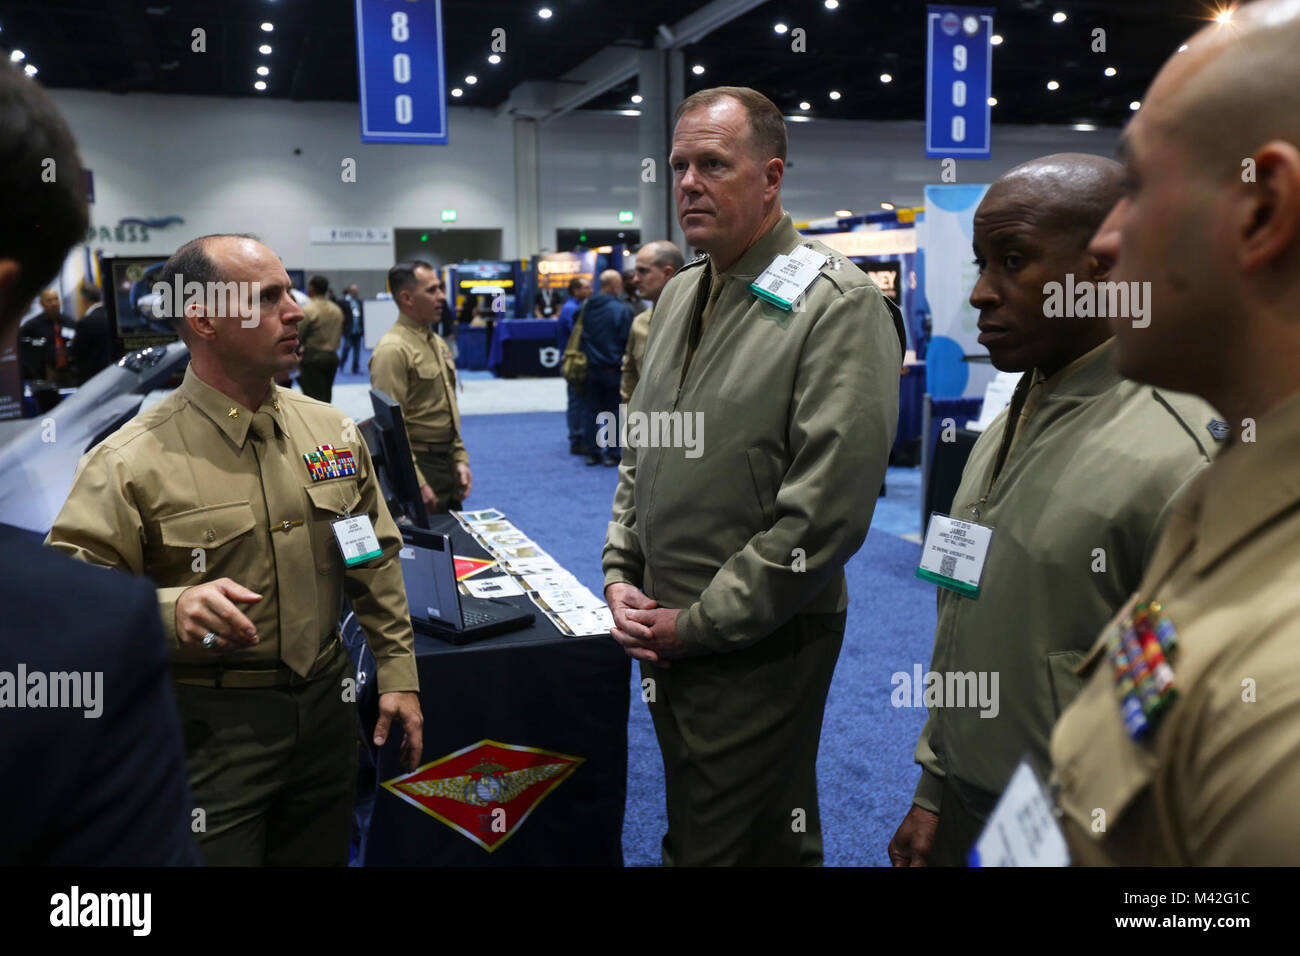 Maj. Gen. Mark R. Wise, 3rd Marine Aircraft Wing (MAW) commanding general, visits the 3rd MAW display at WEST 2018 Stock Photo